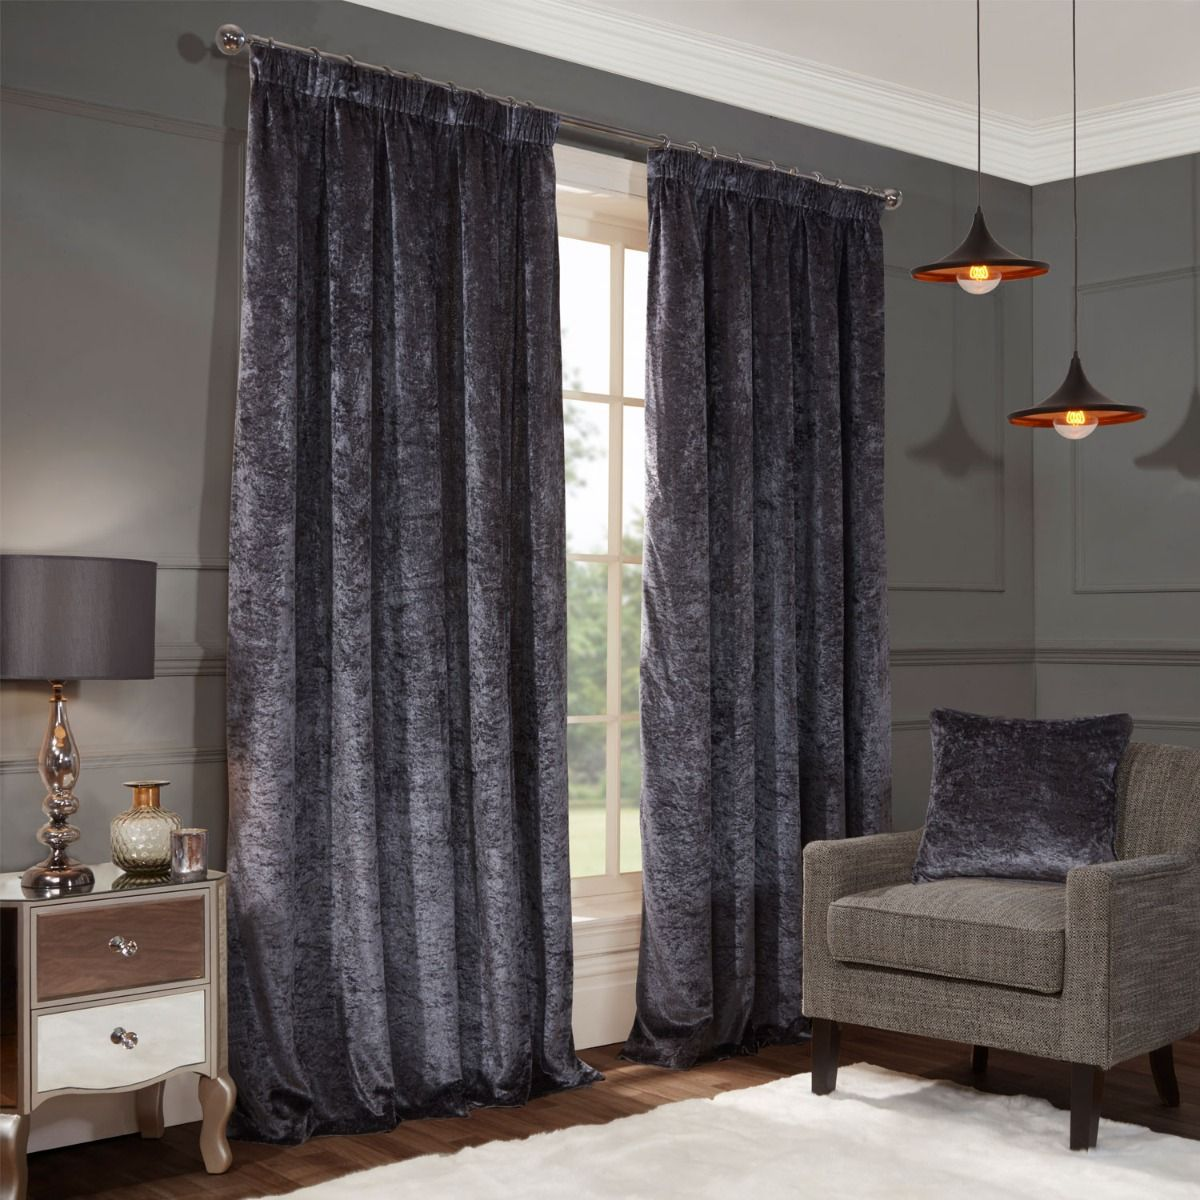 Allure Charcoal Crushed Velvet Luxury Pencil Pleat Curtains Size In 2020 Curtains Crushed Velvet Velvet Curtains Black Blackout Curtains